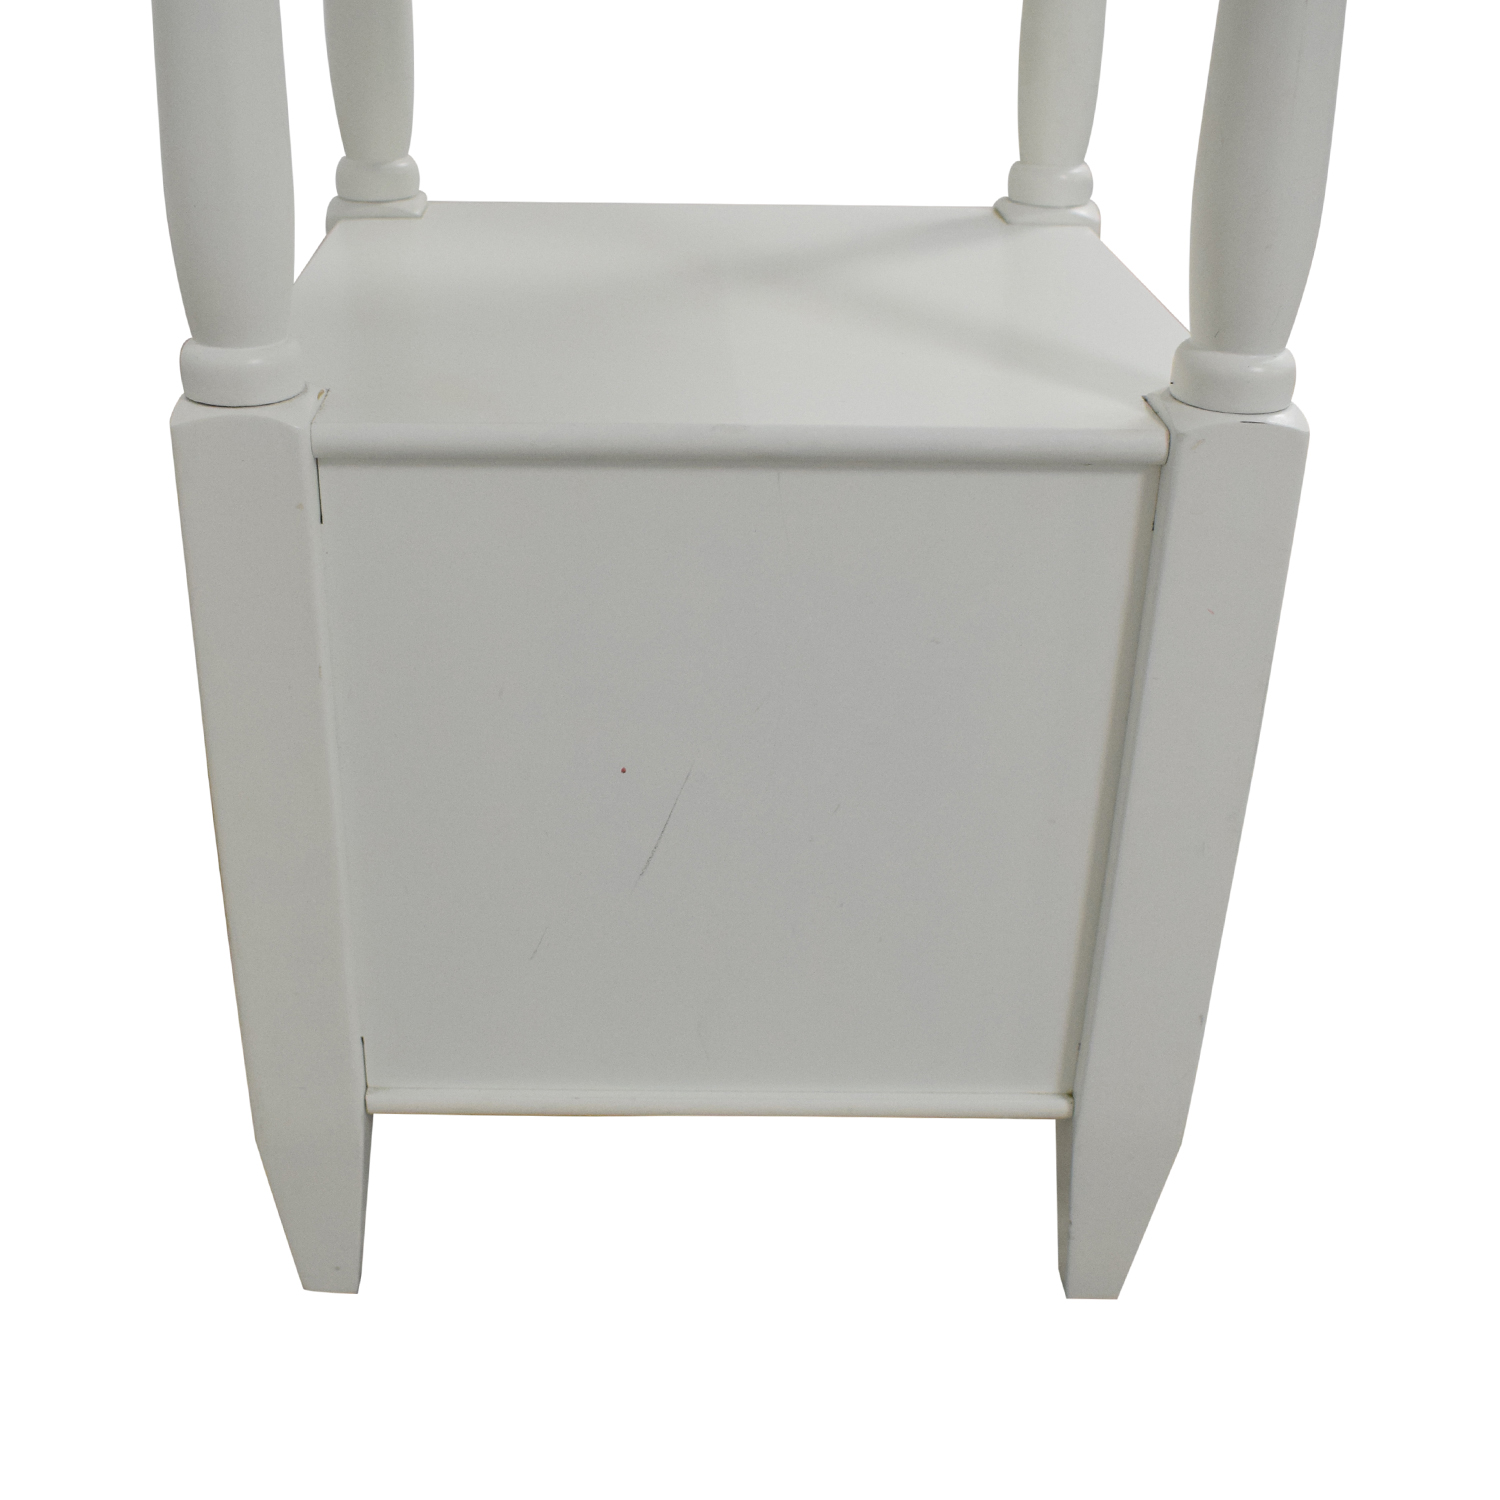 Pottery Barn Kids Pottery Barn Kids Night Stand for sale